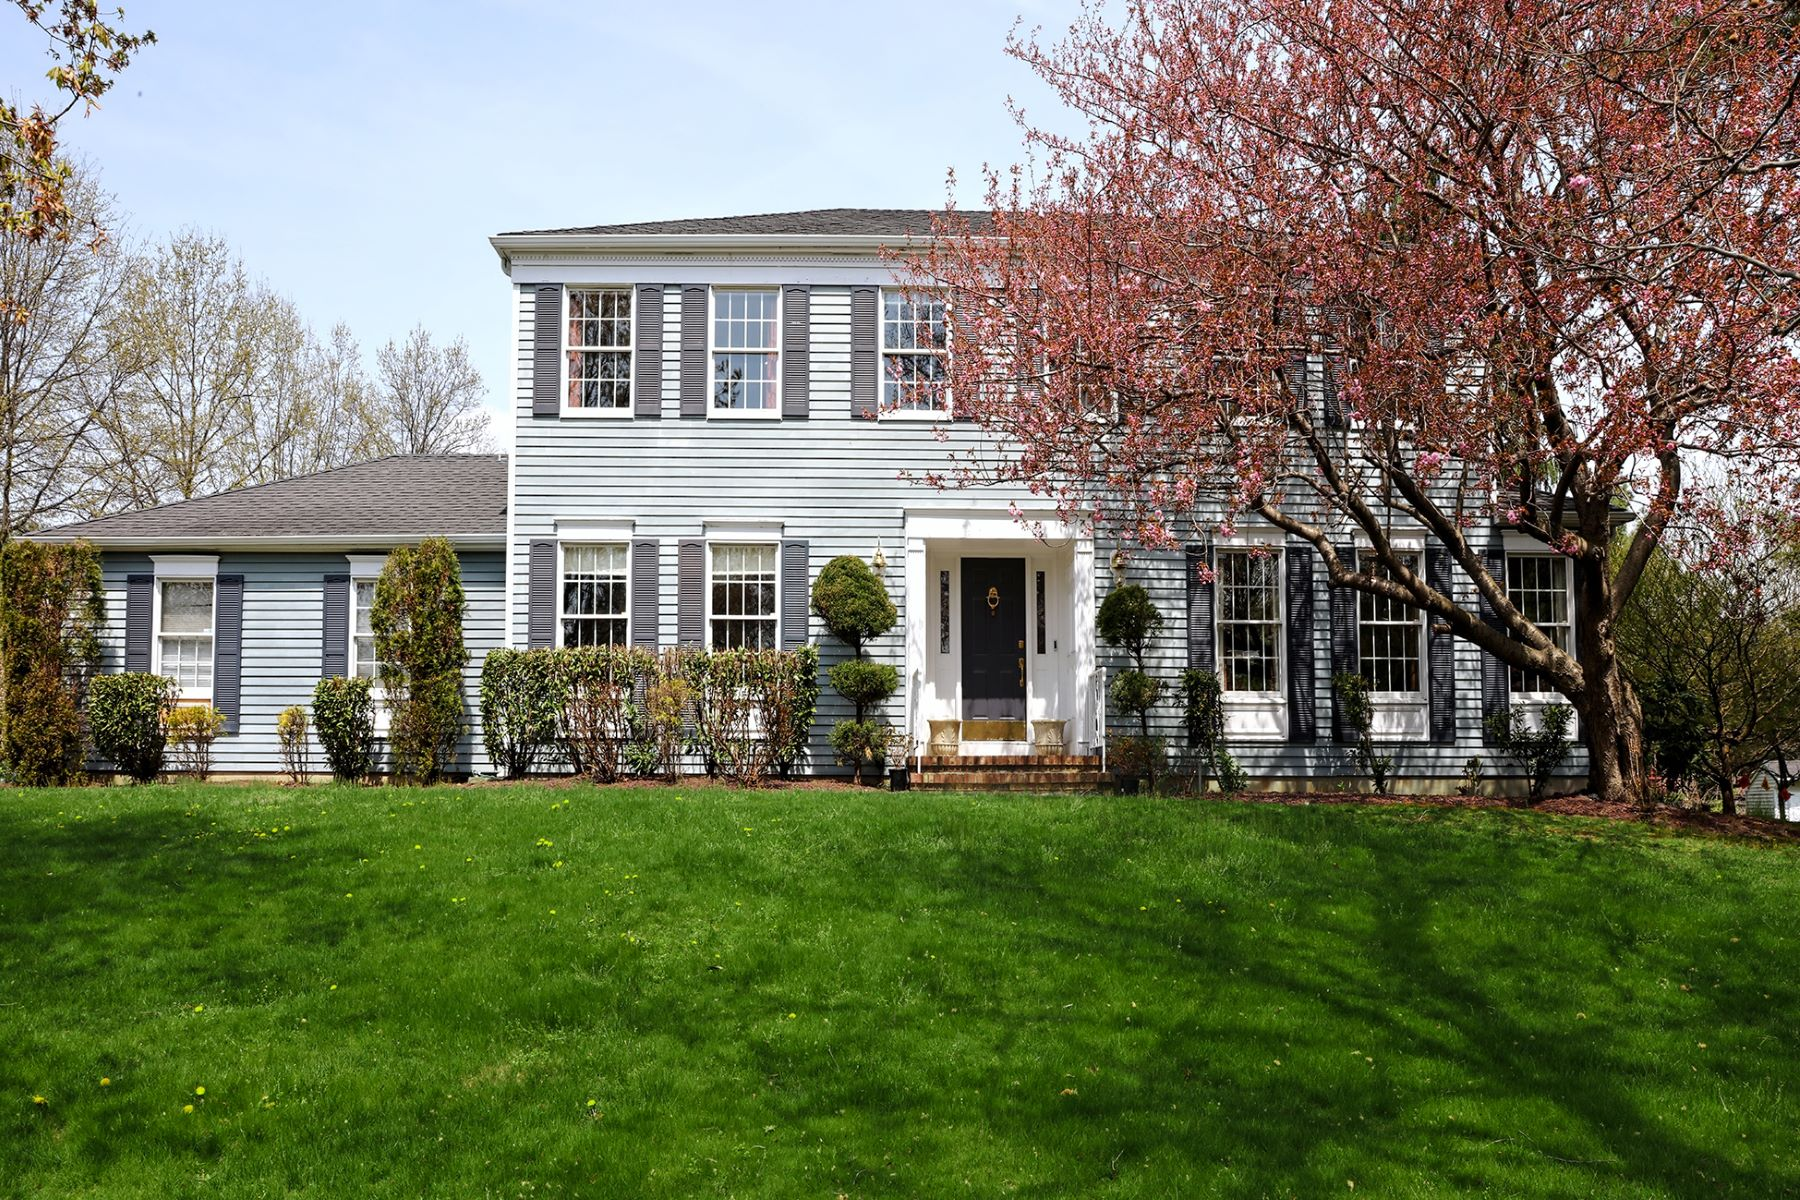 独户住宅 为 销售 在 Exceptional Cul-De-Sac Colonial in Princeton Oaks 3 Cranston Court, Princeton Junction, 新泽西州 08550 美国